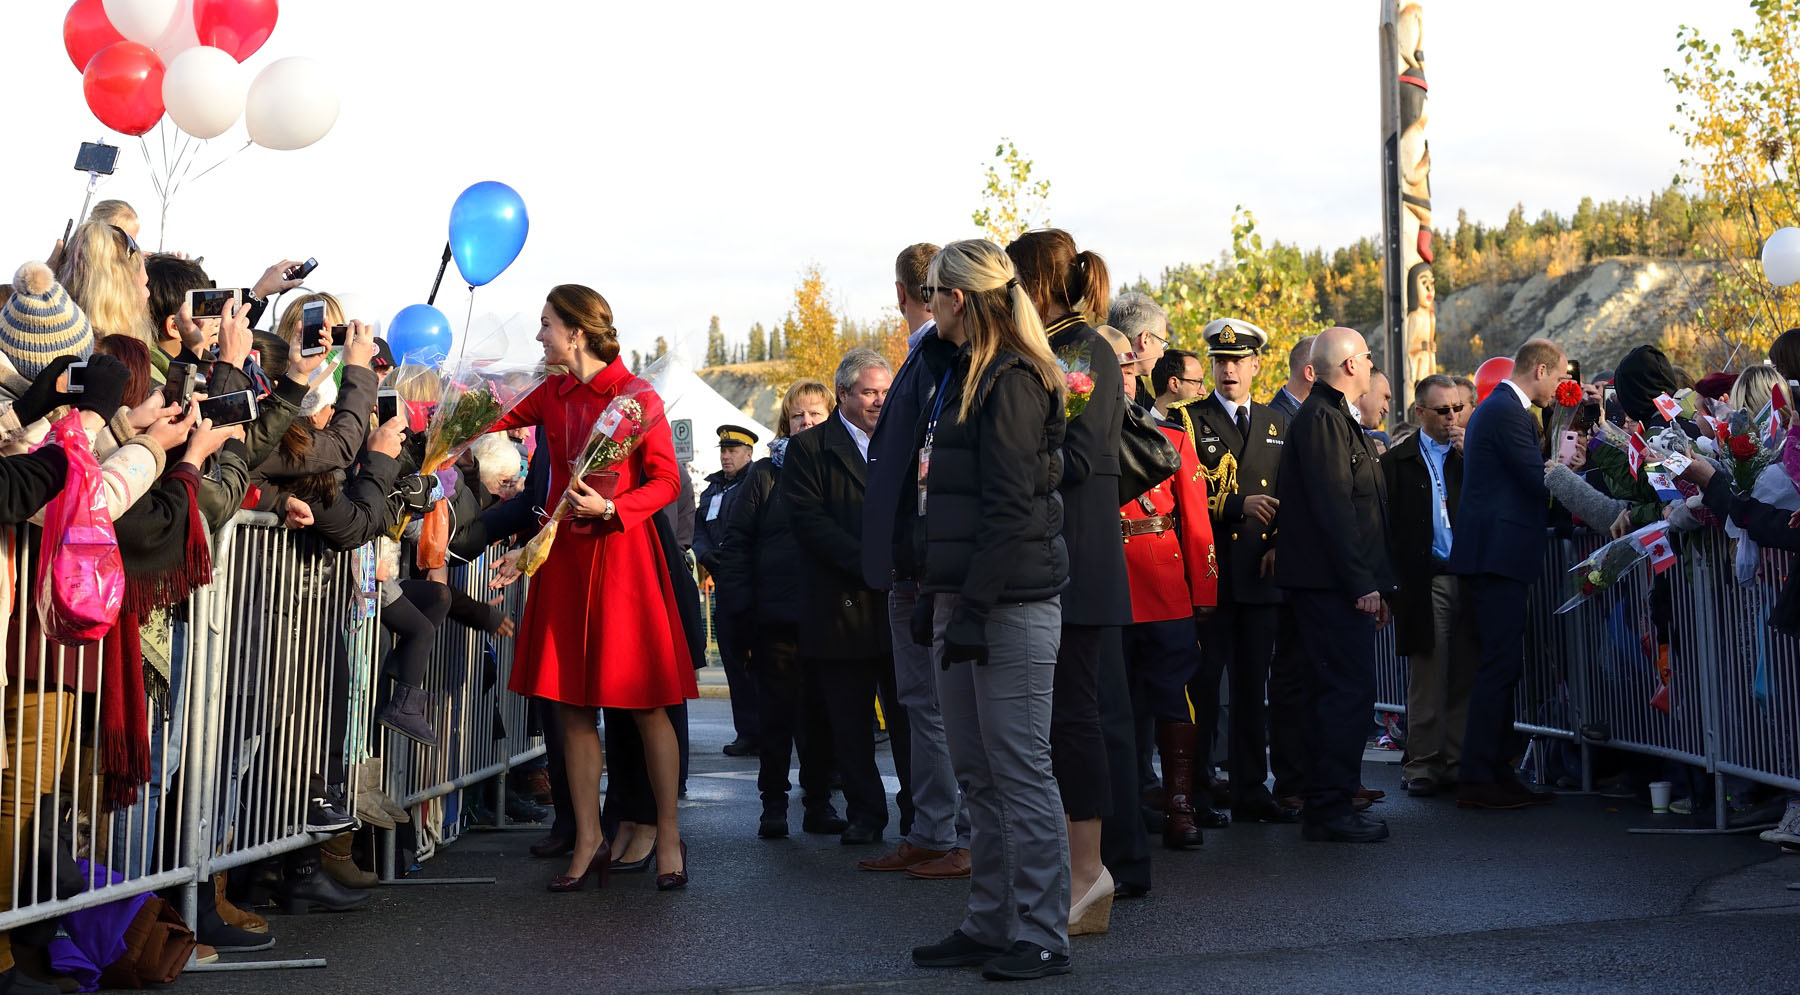 The Duchess of Cambridge received flowers from people in Whitehorse.